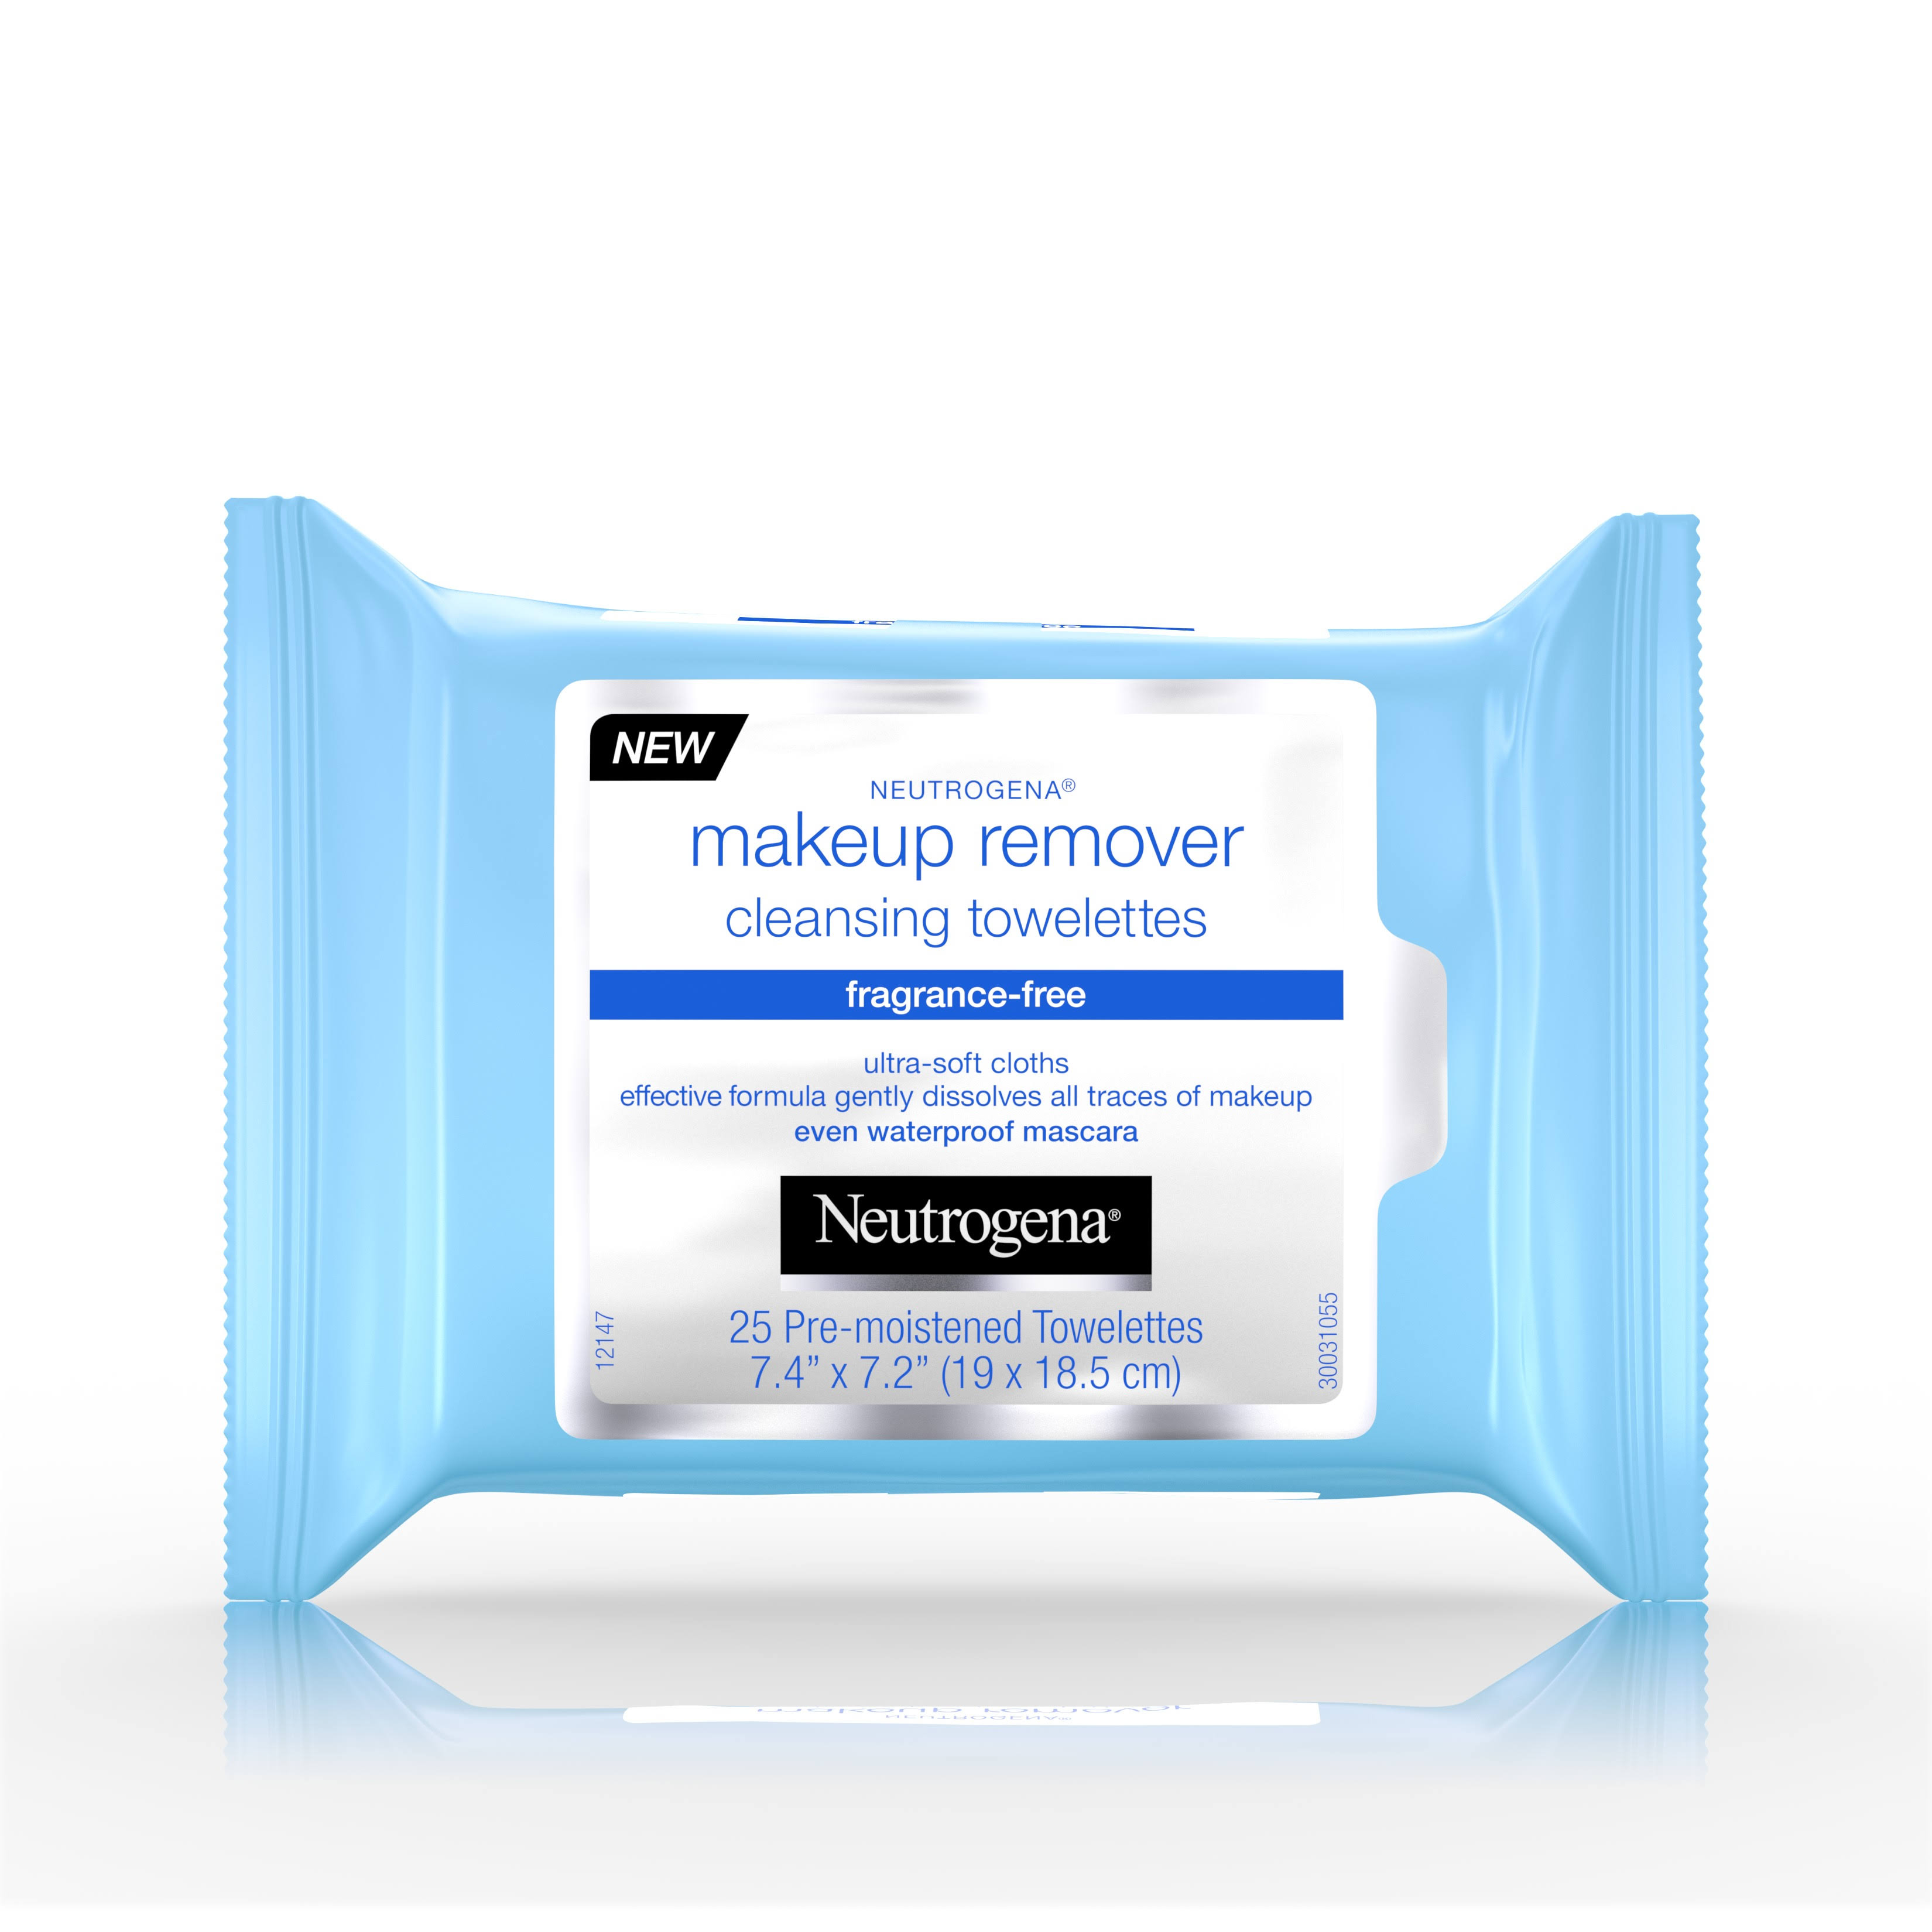 Neutrogena Make Up Remover Cleansing Towelettes - Fragrance Free, 25ct